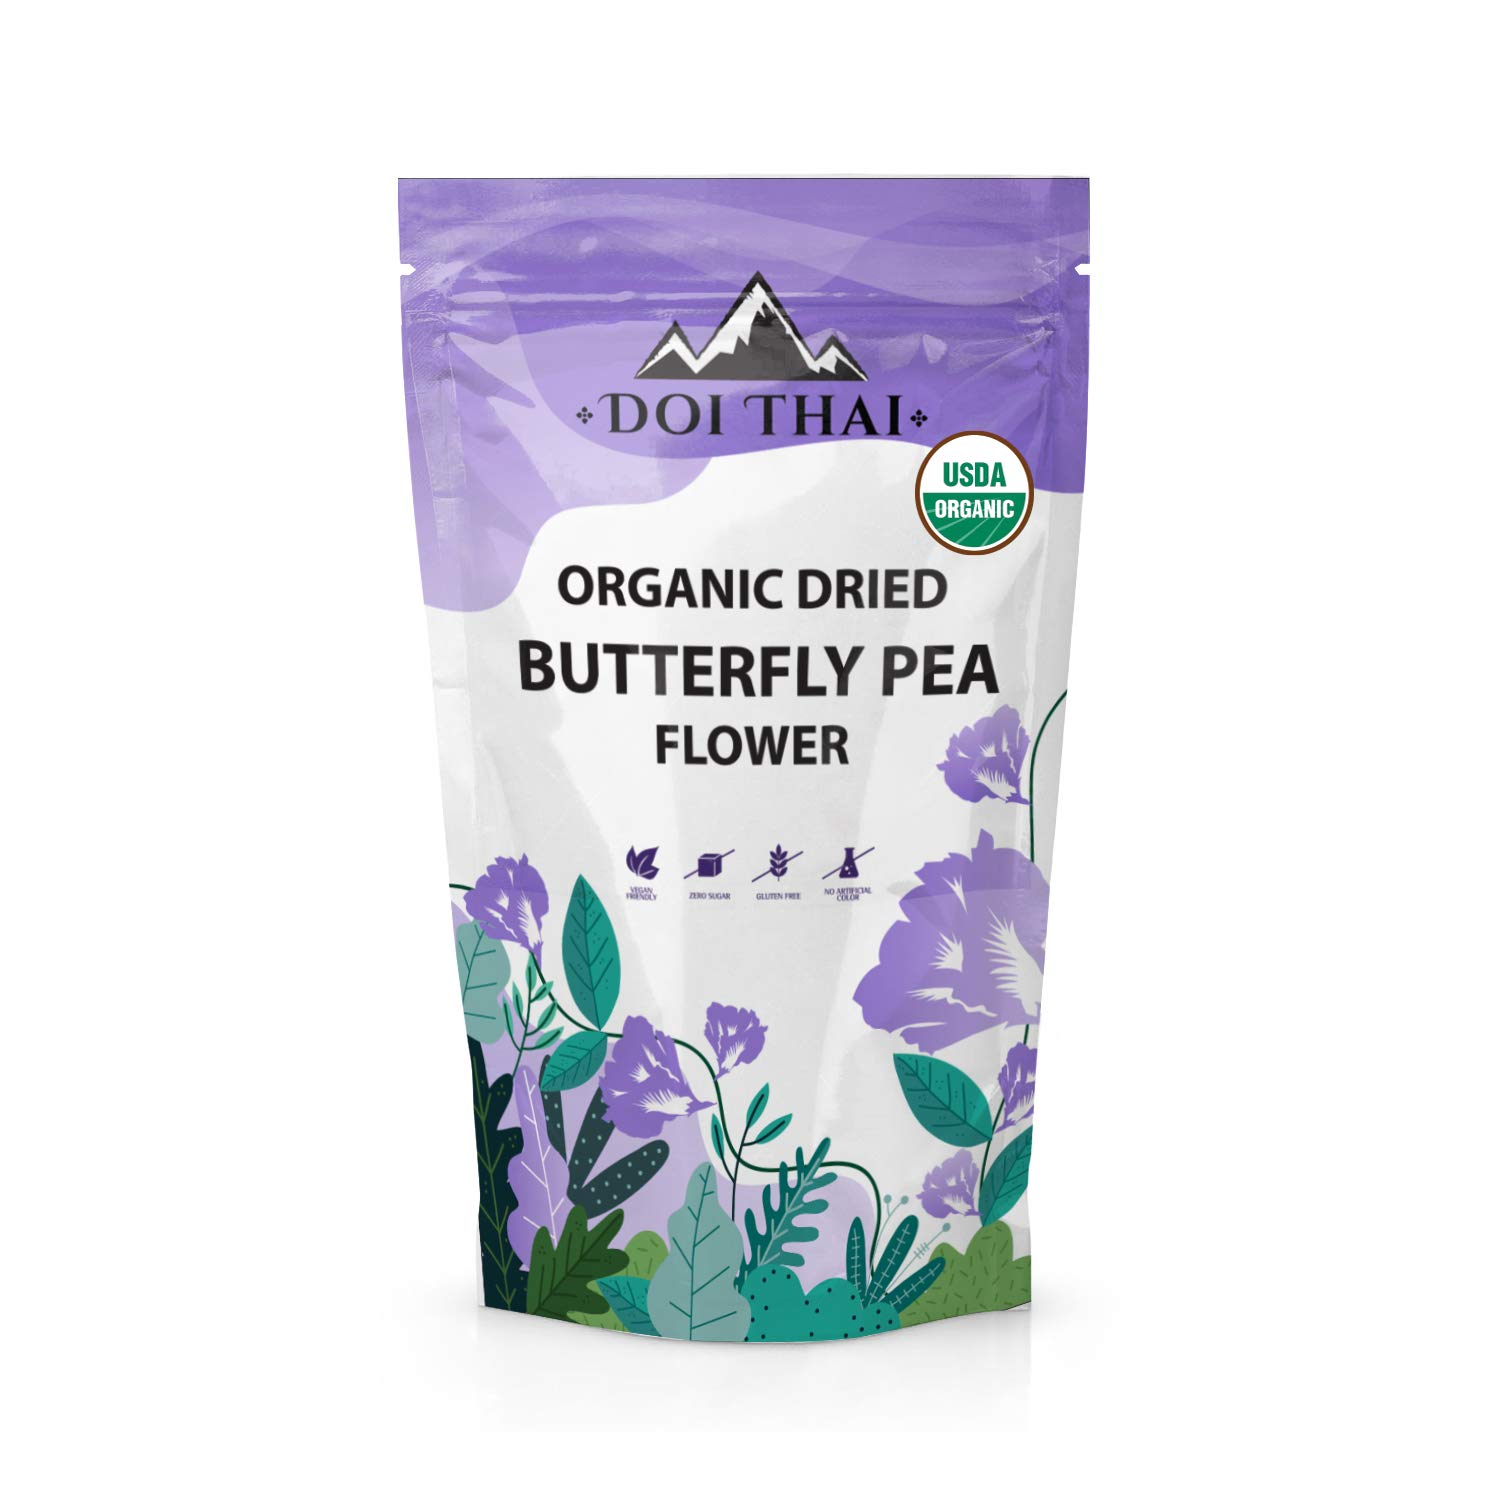 Doi THAI Butterfly Pea Flower Tea - NON GMO Rich Healthy Herbal Blue Tea - Pure Dried Clitoria Ternatea Flowers for Drinks, Food Coloring, Baking